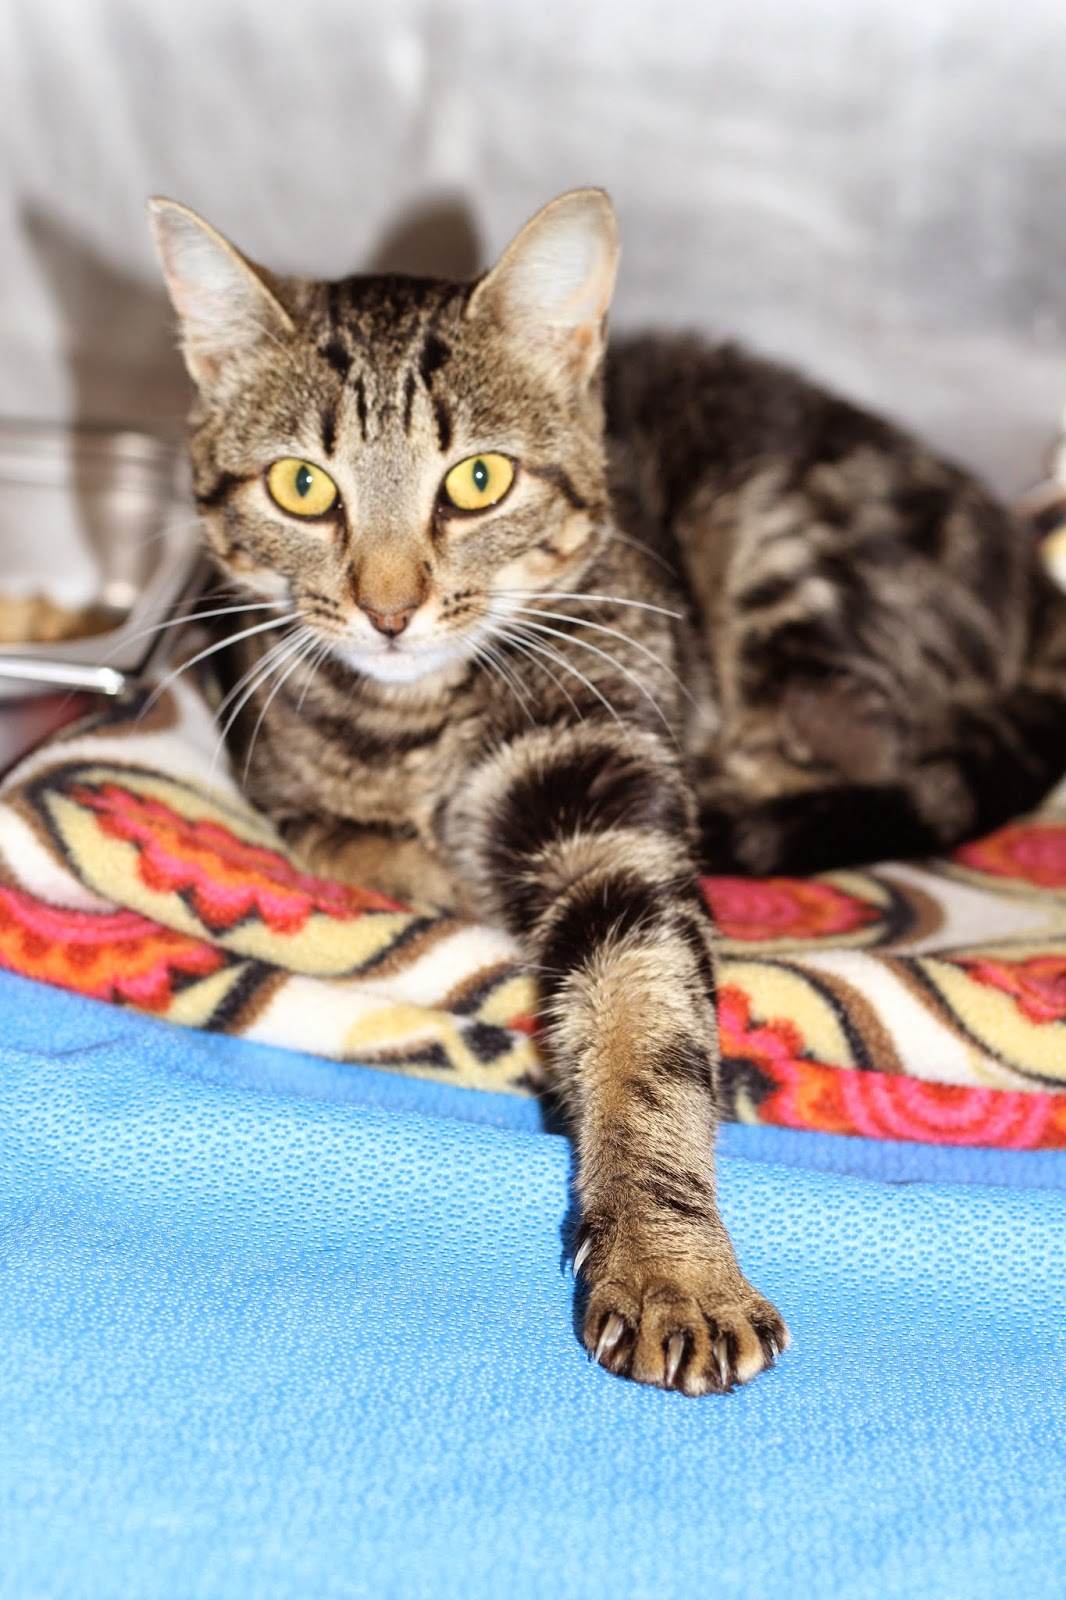 declawing cats humane - photo #9